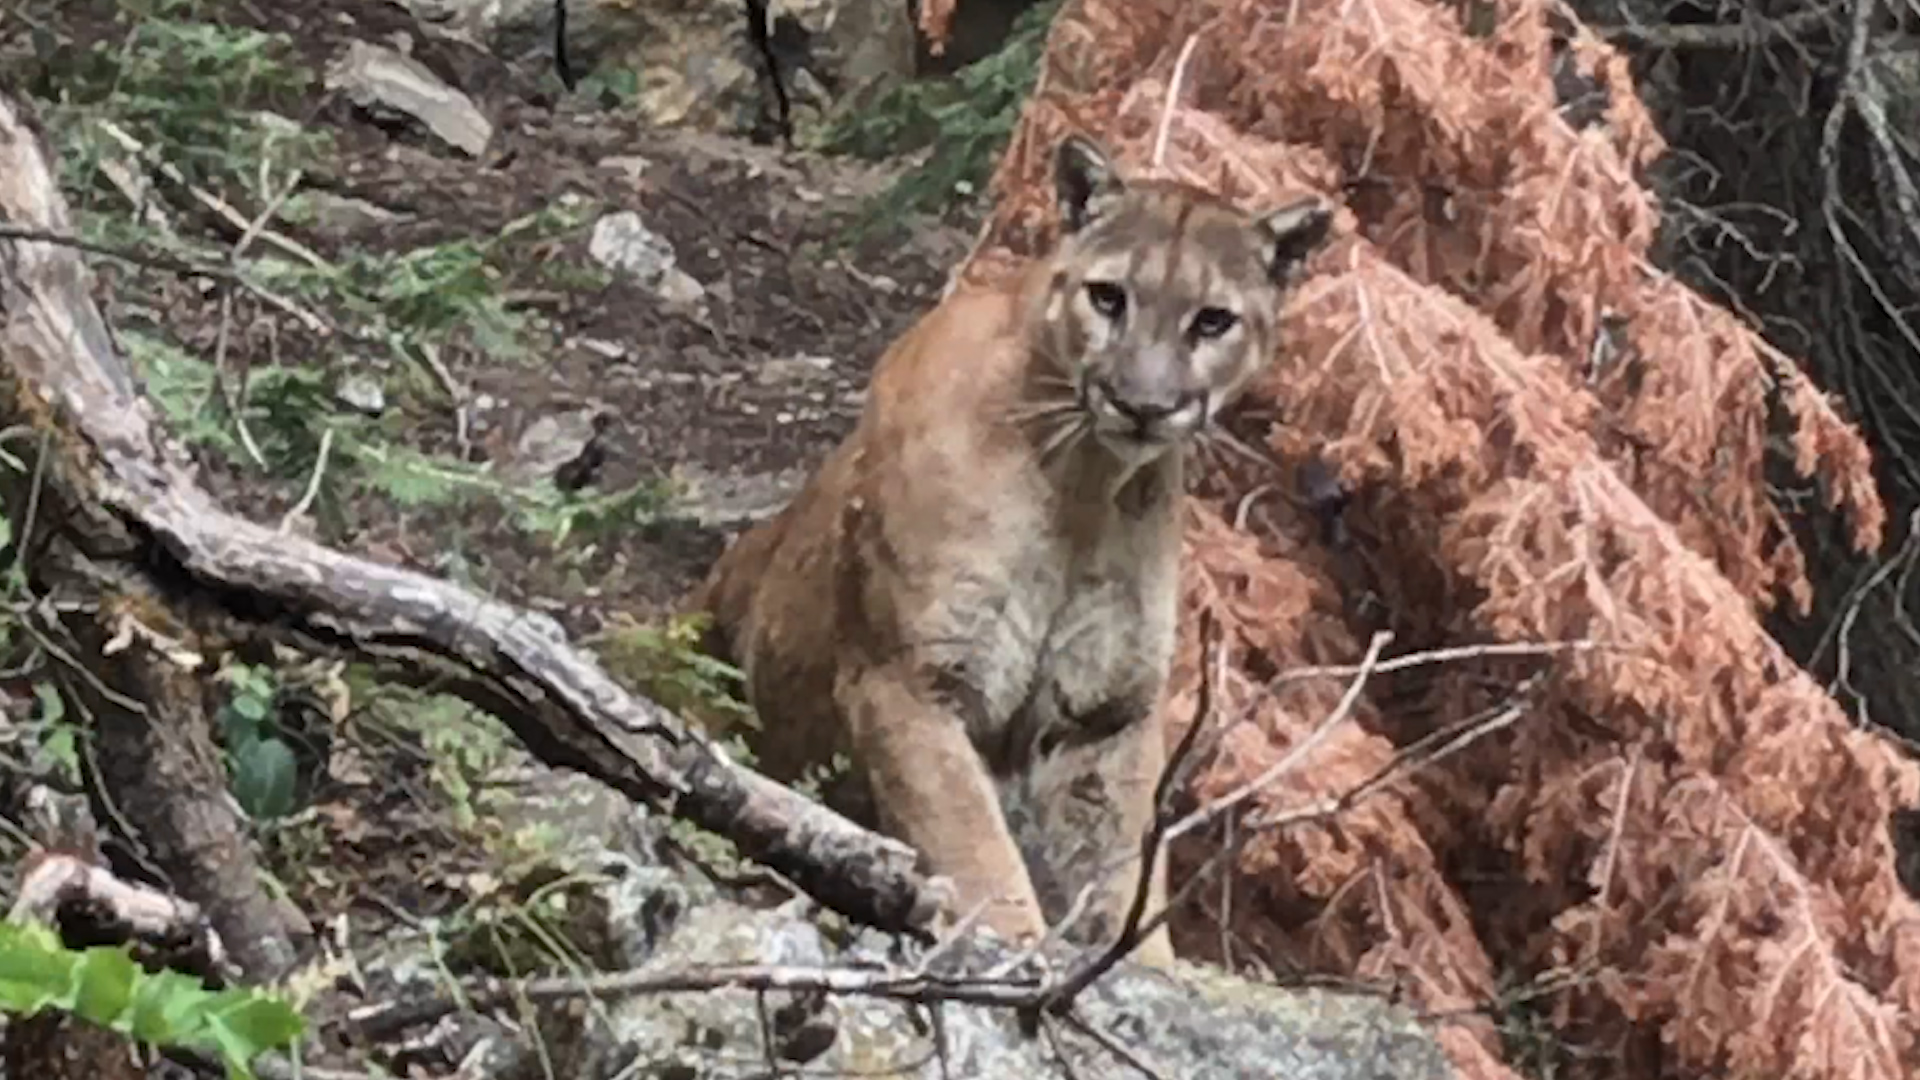 Mountain lion face - photo#41